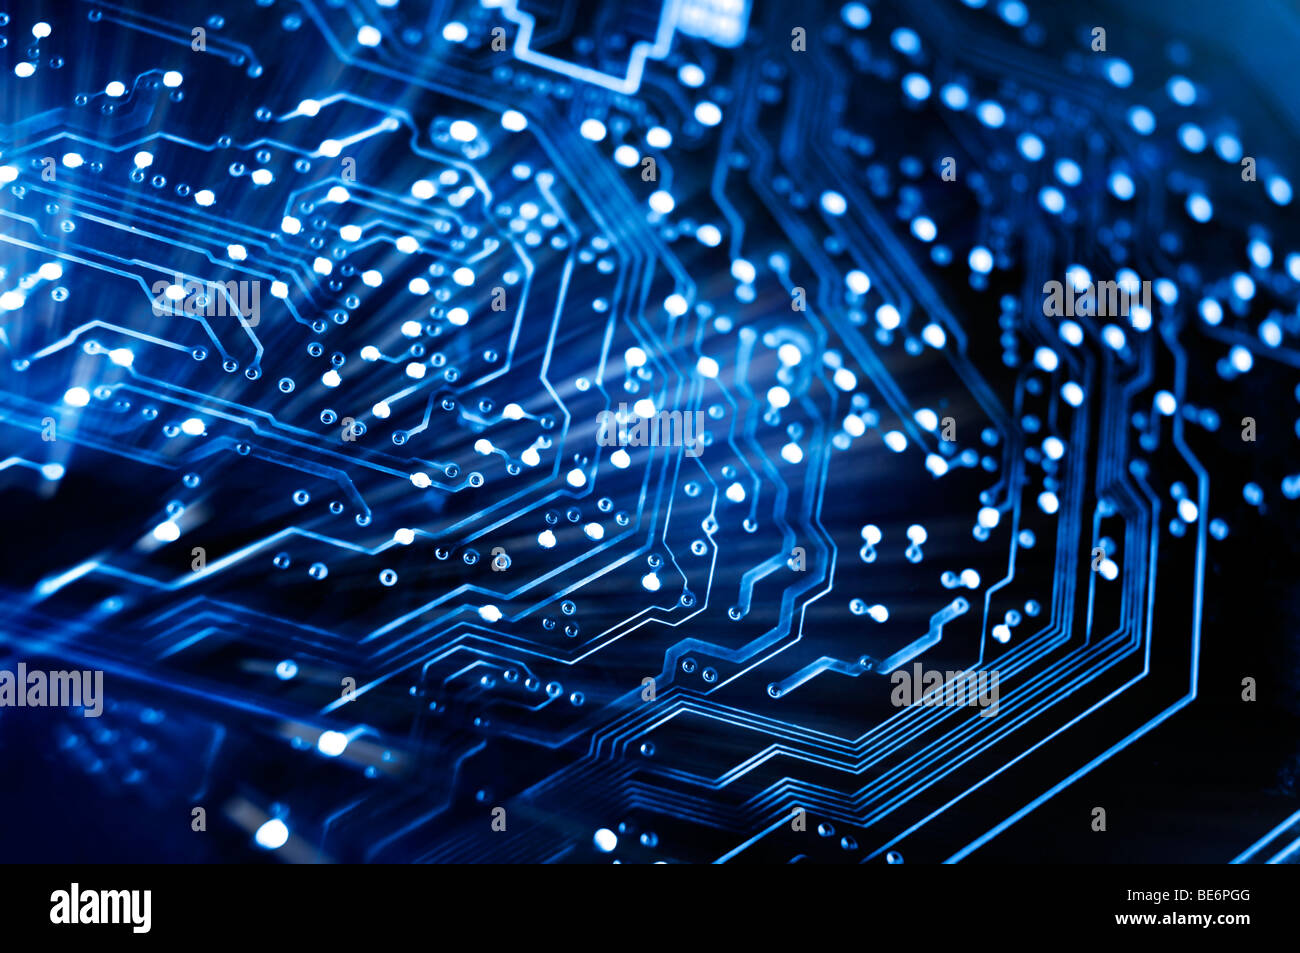 Abstract Circuit Board Stock Photos Old Electronic Royalty Free Image Conceptual Background